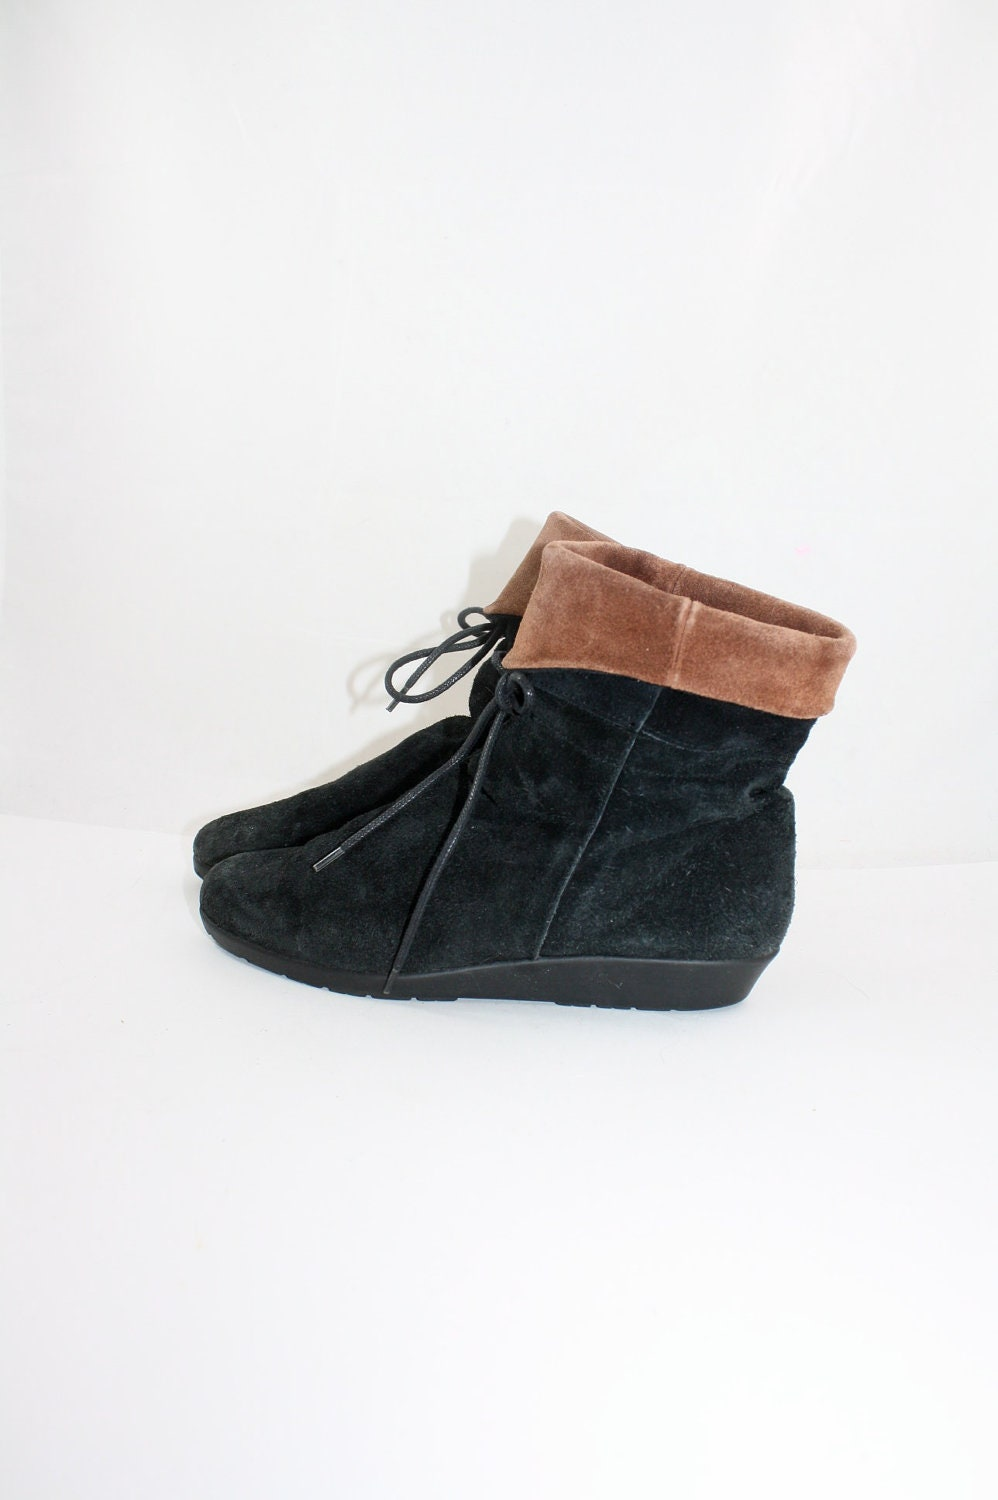 vintage 1980's black n cocoa suede ankle boots 6 - WindingRoadVintage